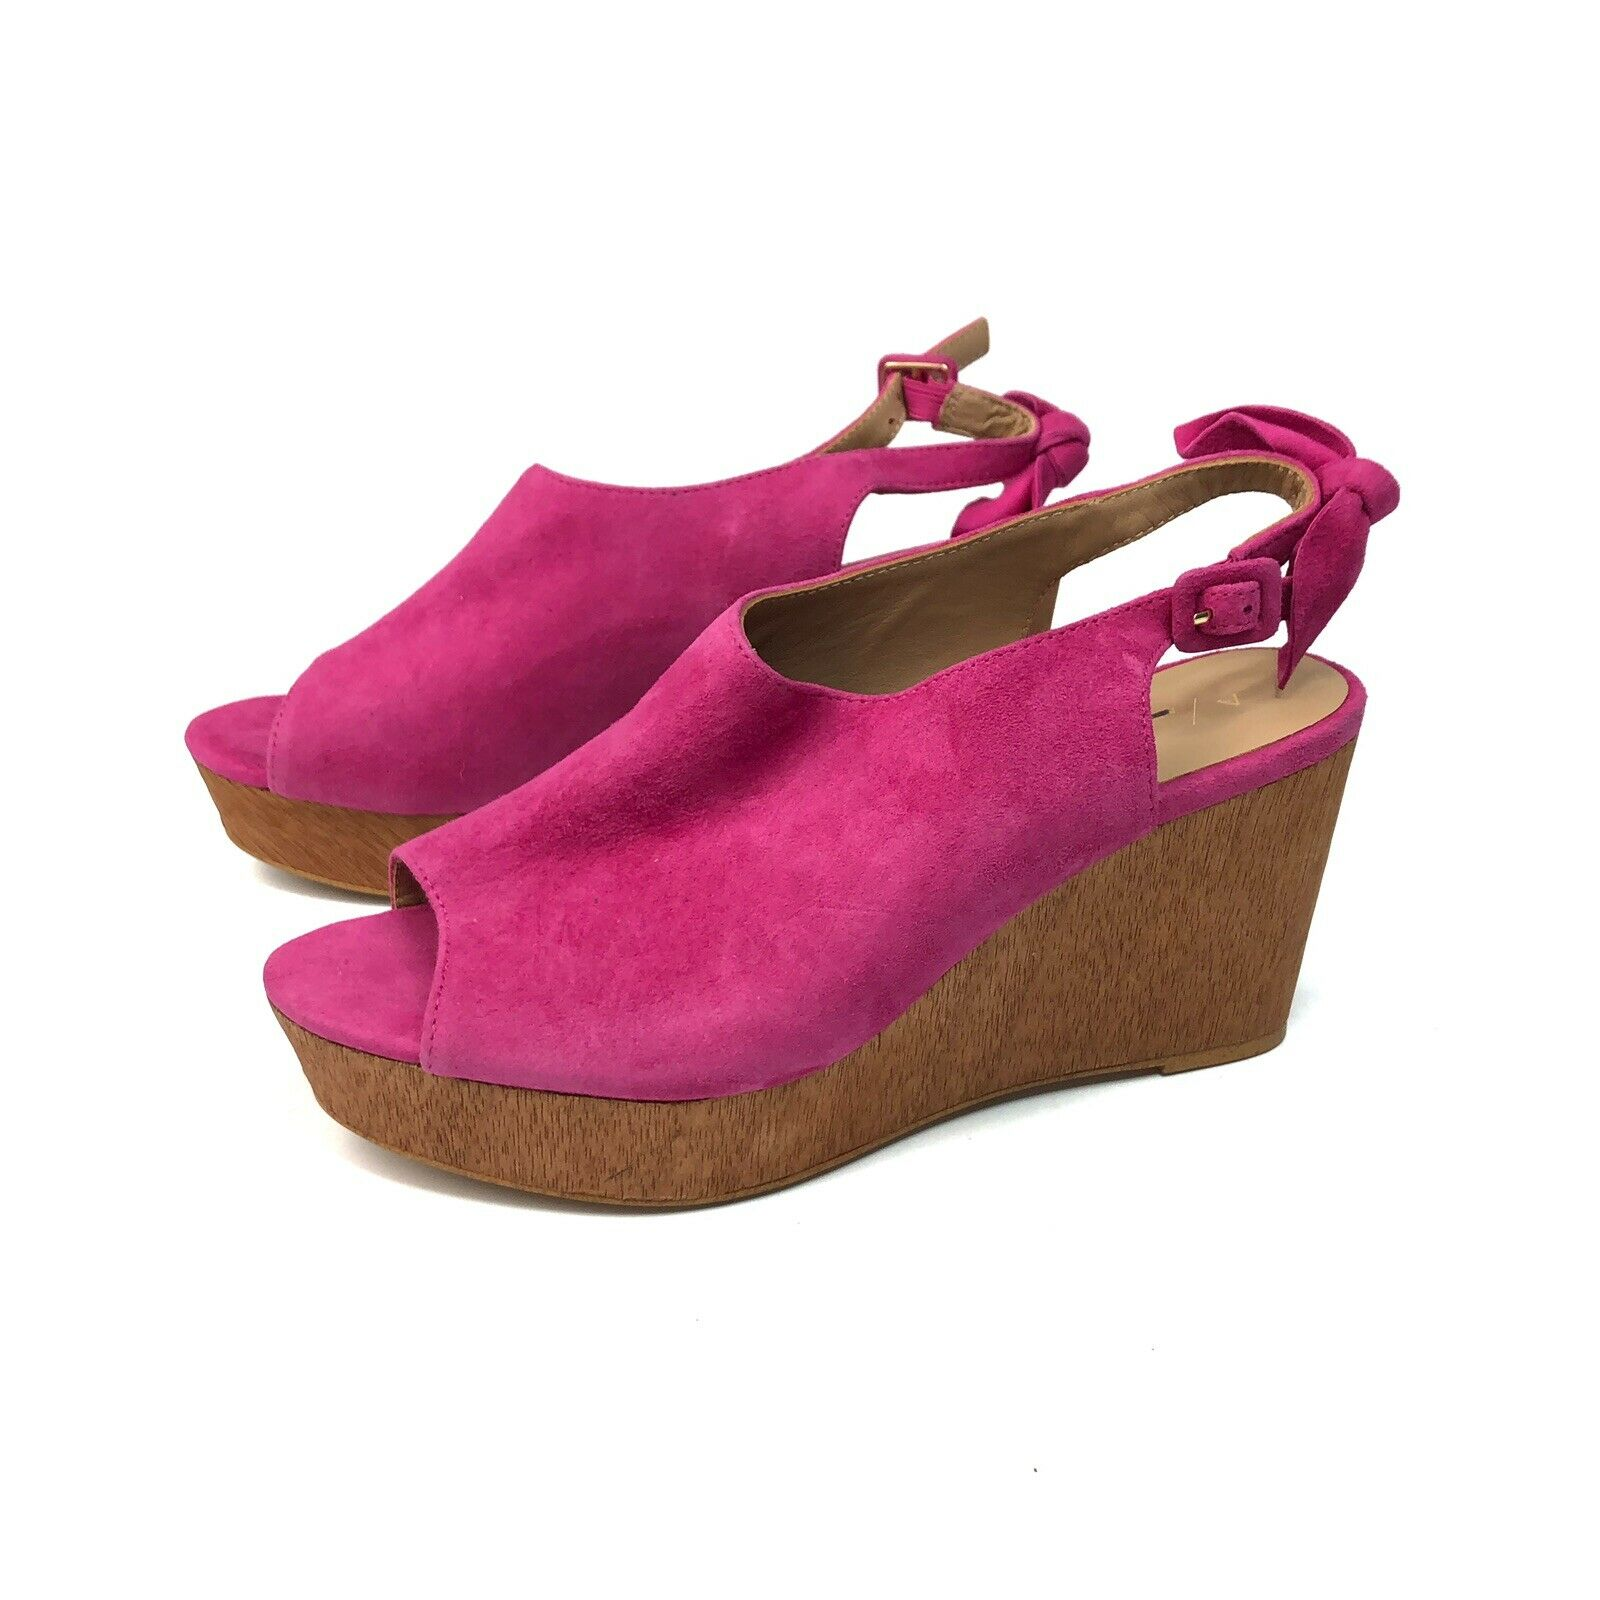 Anthropologie Pink Suede Bow Slingback Platform Wooden Heels shoes Size 9.5